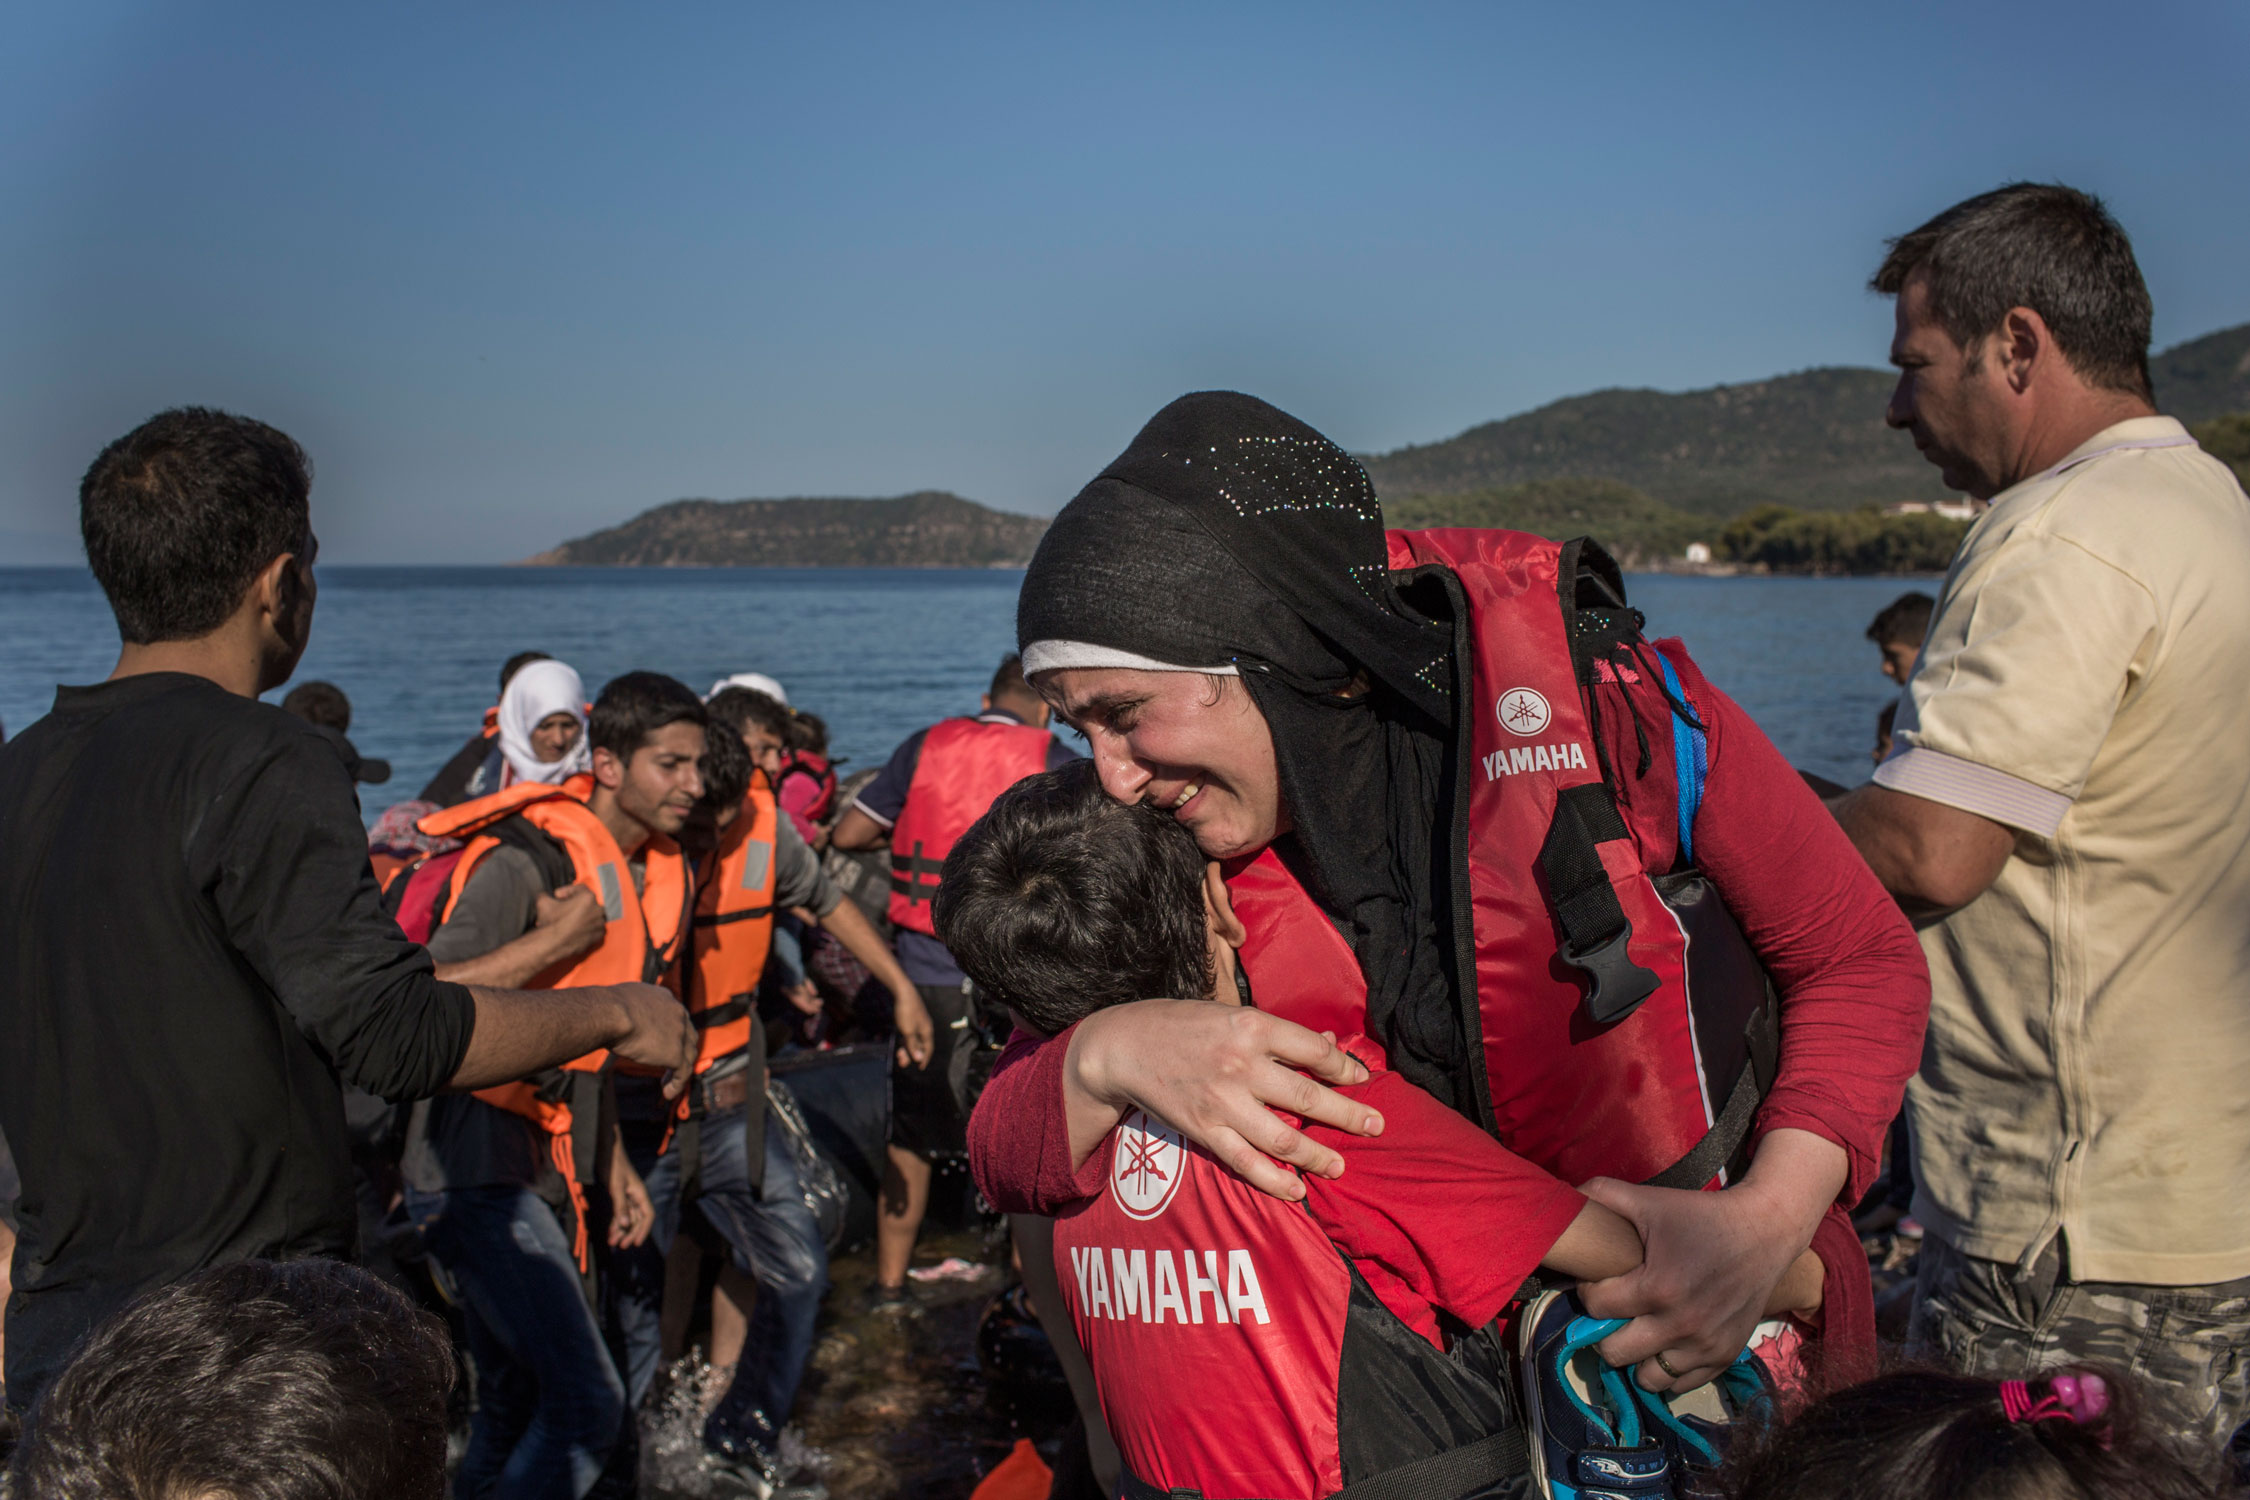 Photographer: Ivor Prickett |Syrian refugee Layla from Aleppo cries tears of joy as she hugs her 8-year-old son Lawand after they and their family reached Greek shores having crossed the Aegean from Turkey.